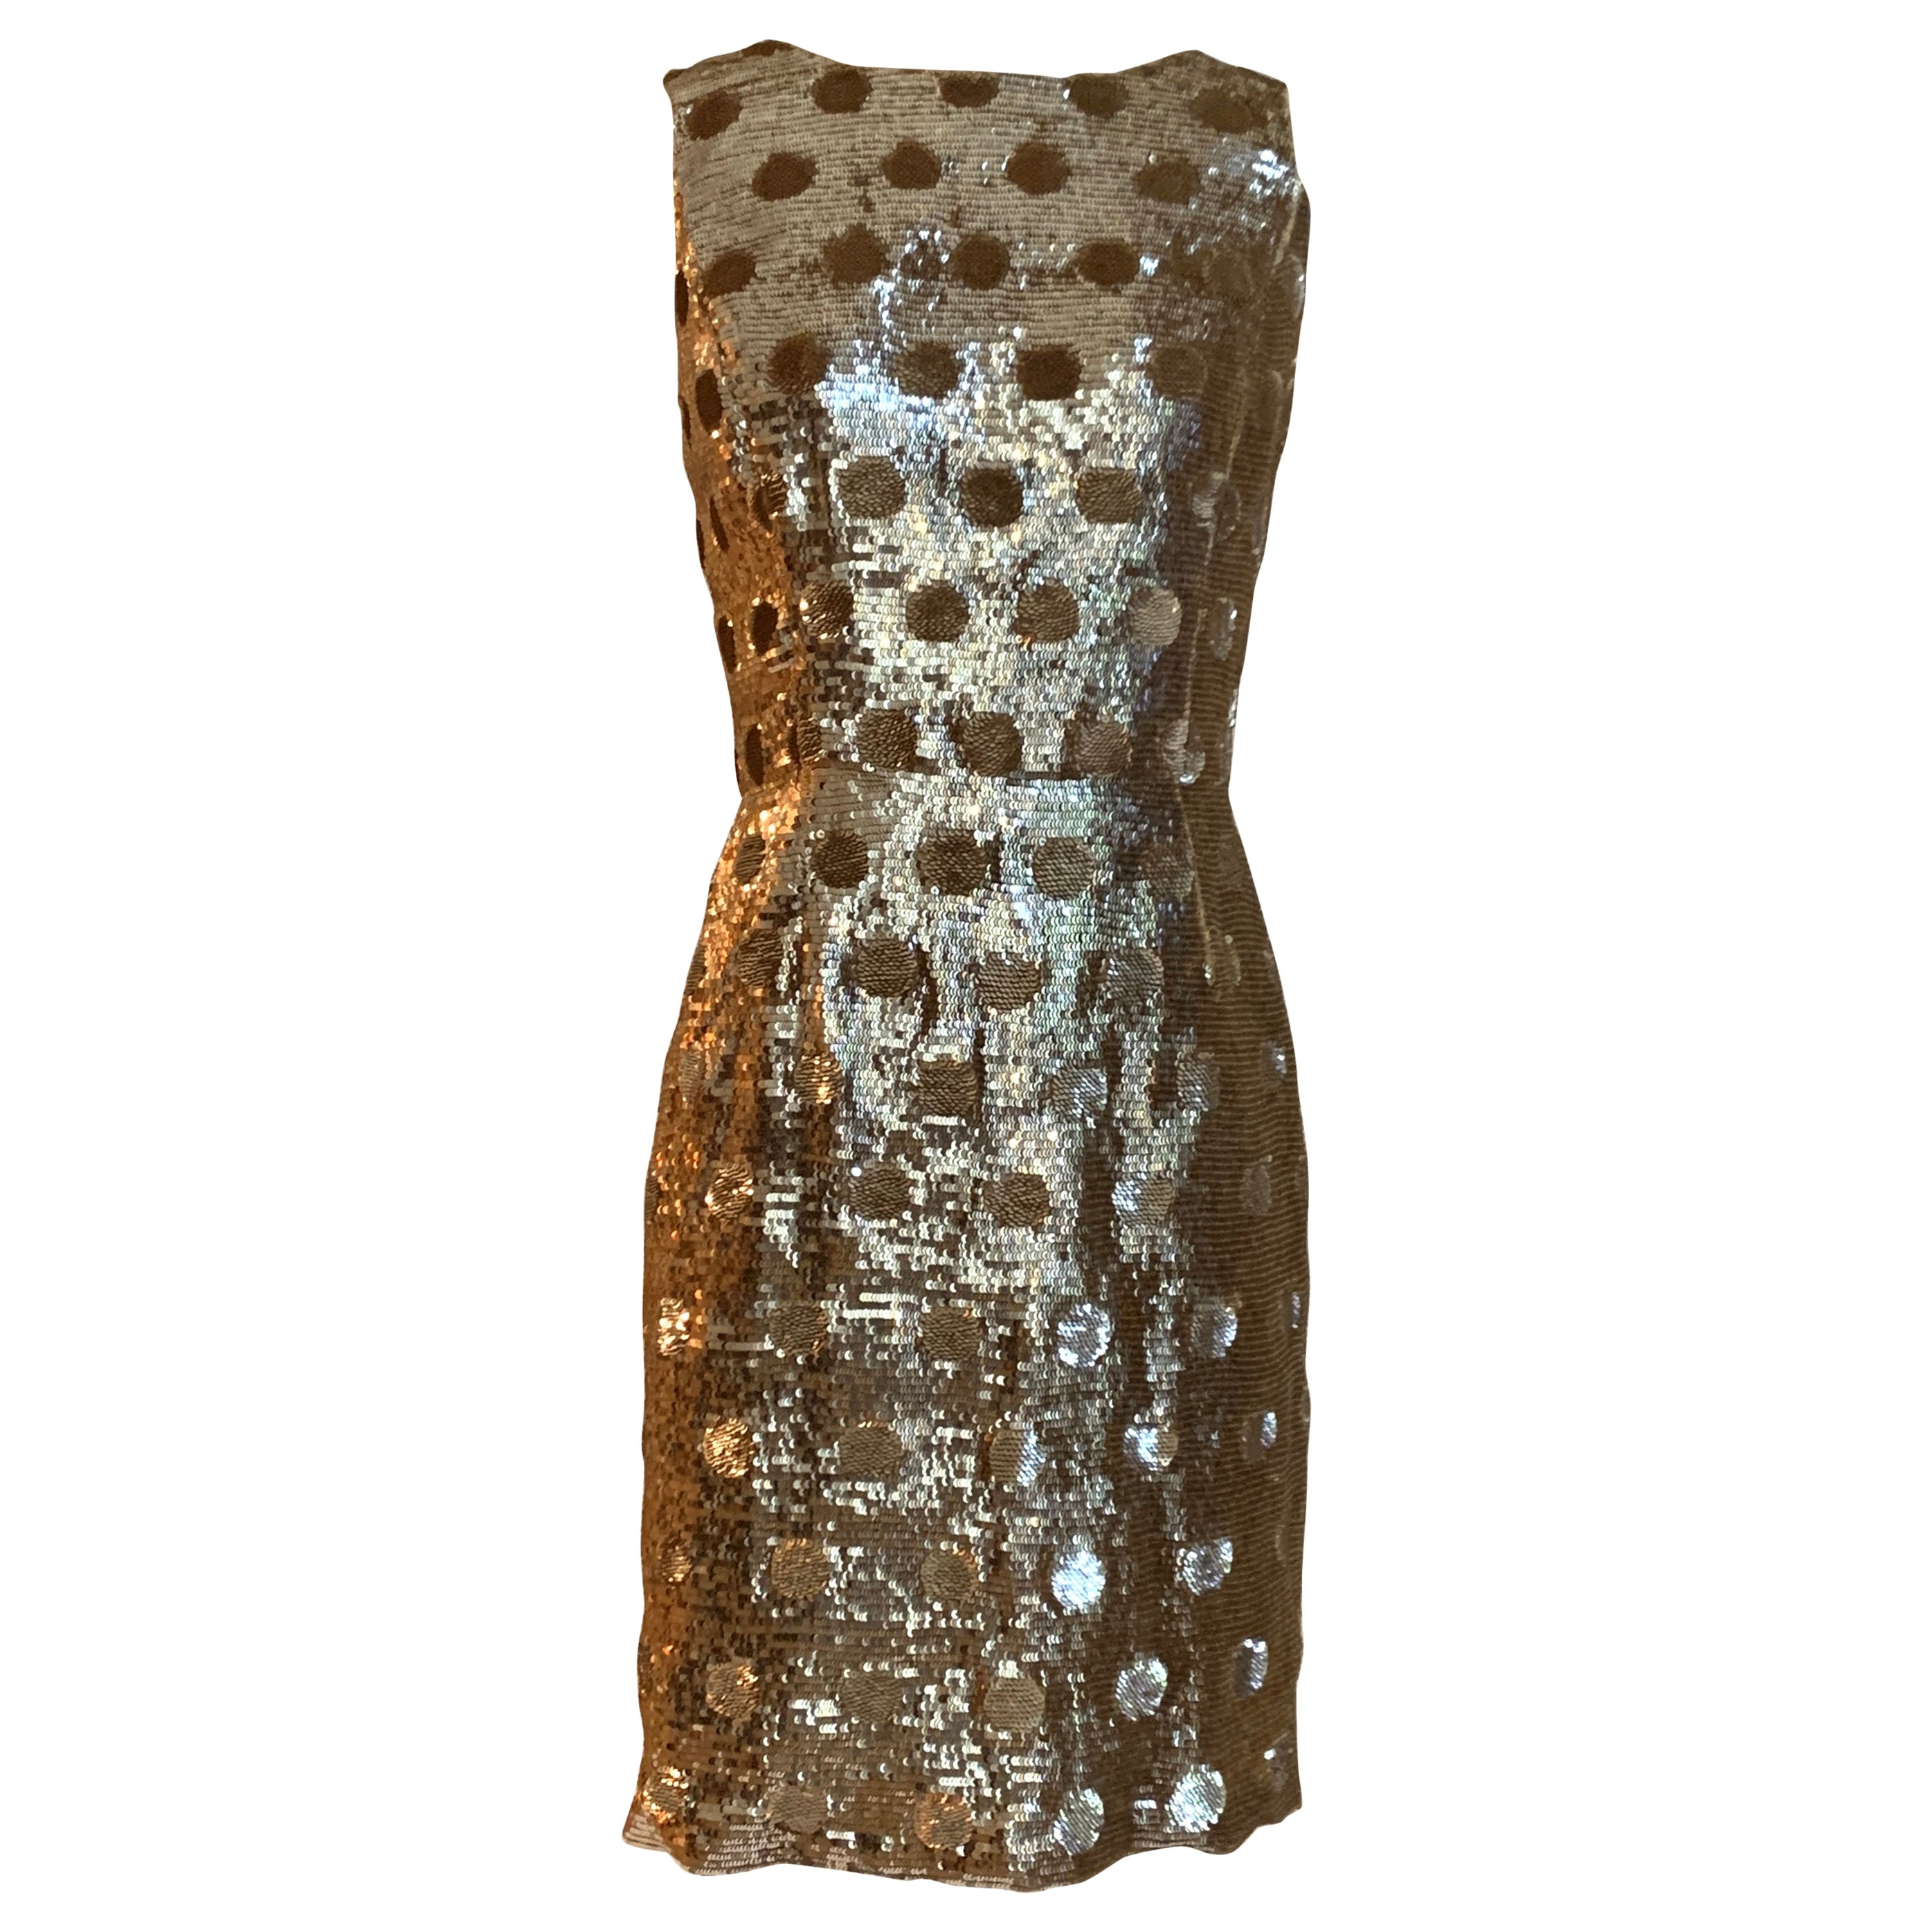 Oscar de la Renta Gold Sequin Polka Dot Sleeveless Cocktail Dress